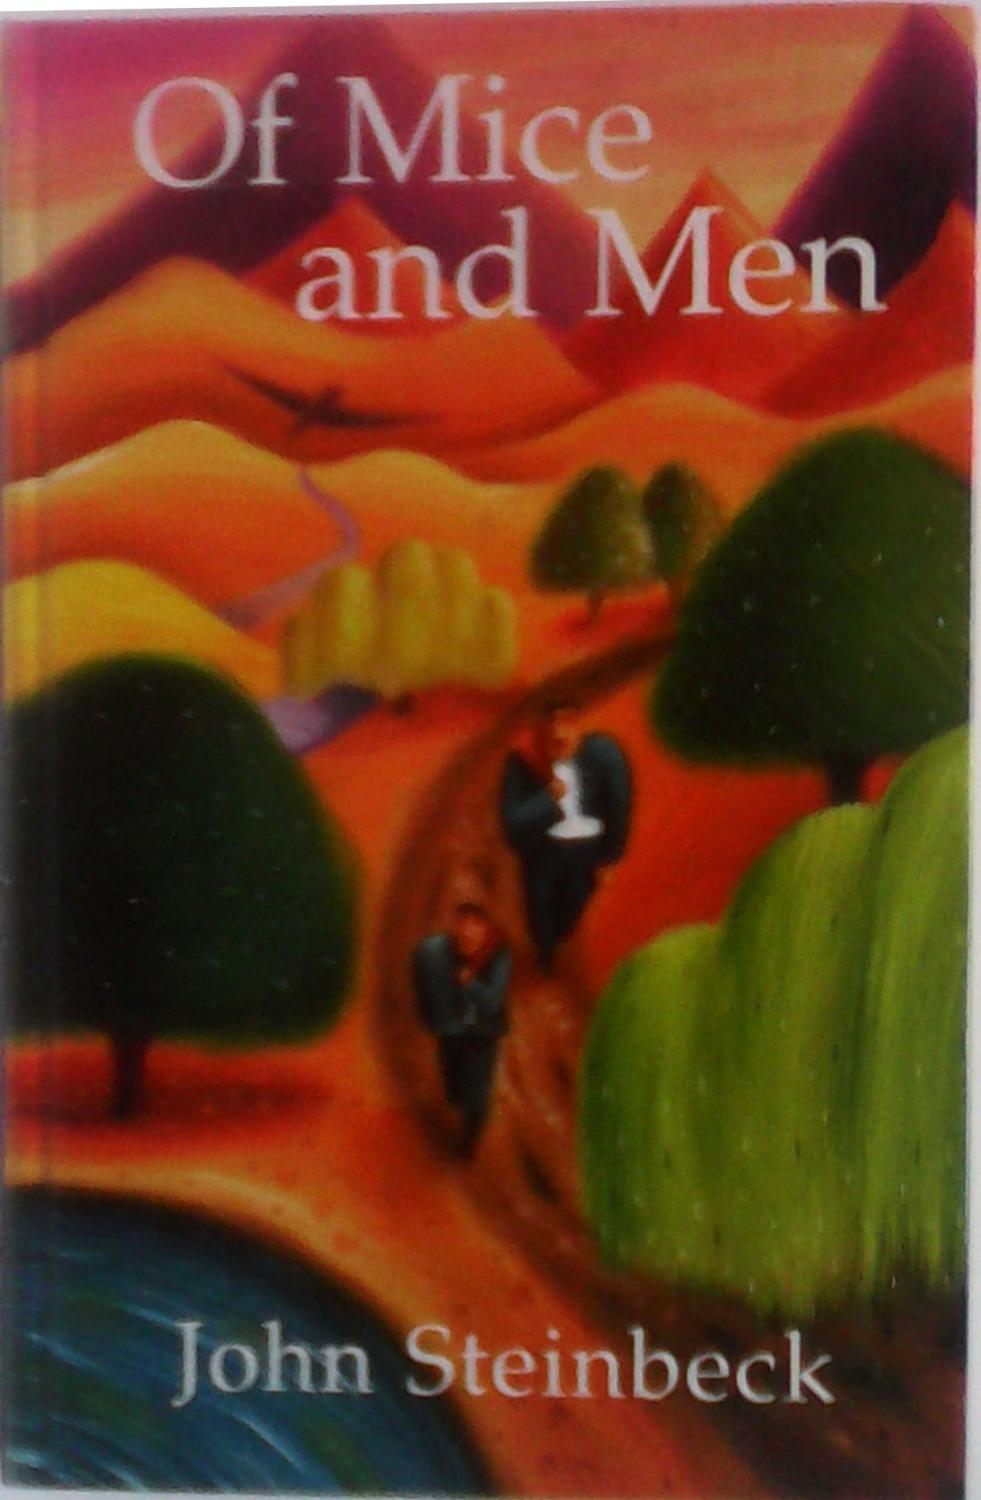 an analysis of of mice and men by john steinbeck John steinbeck's of mice and men, published in 1937, is one of the author's most widely read novels, largely due to its ubiquitous presence in the high school curriculum.